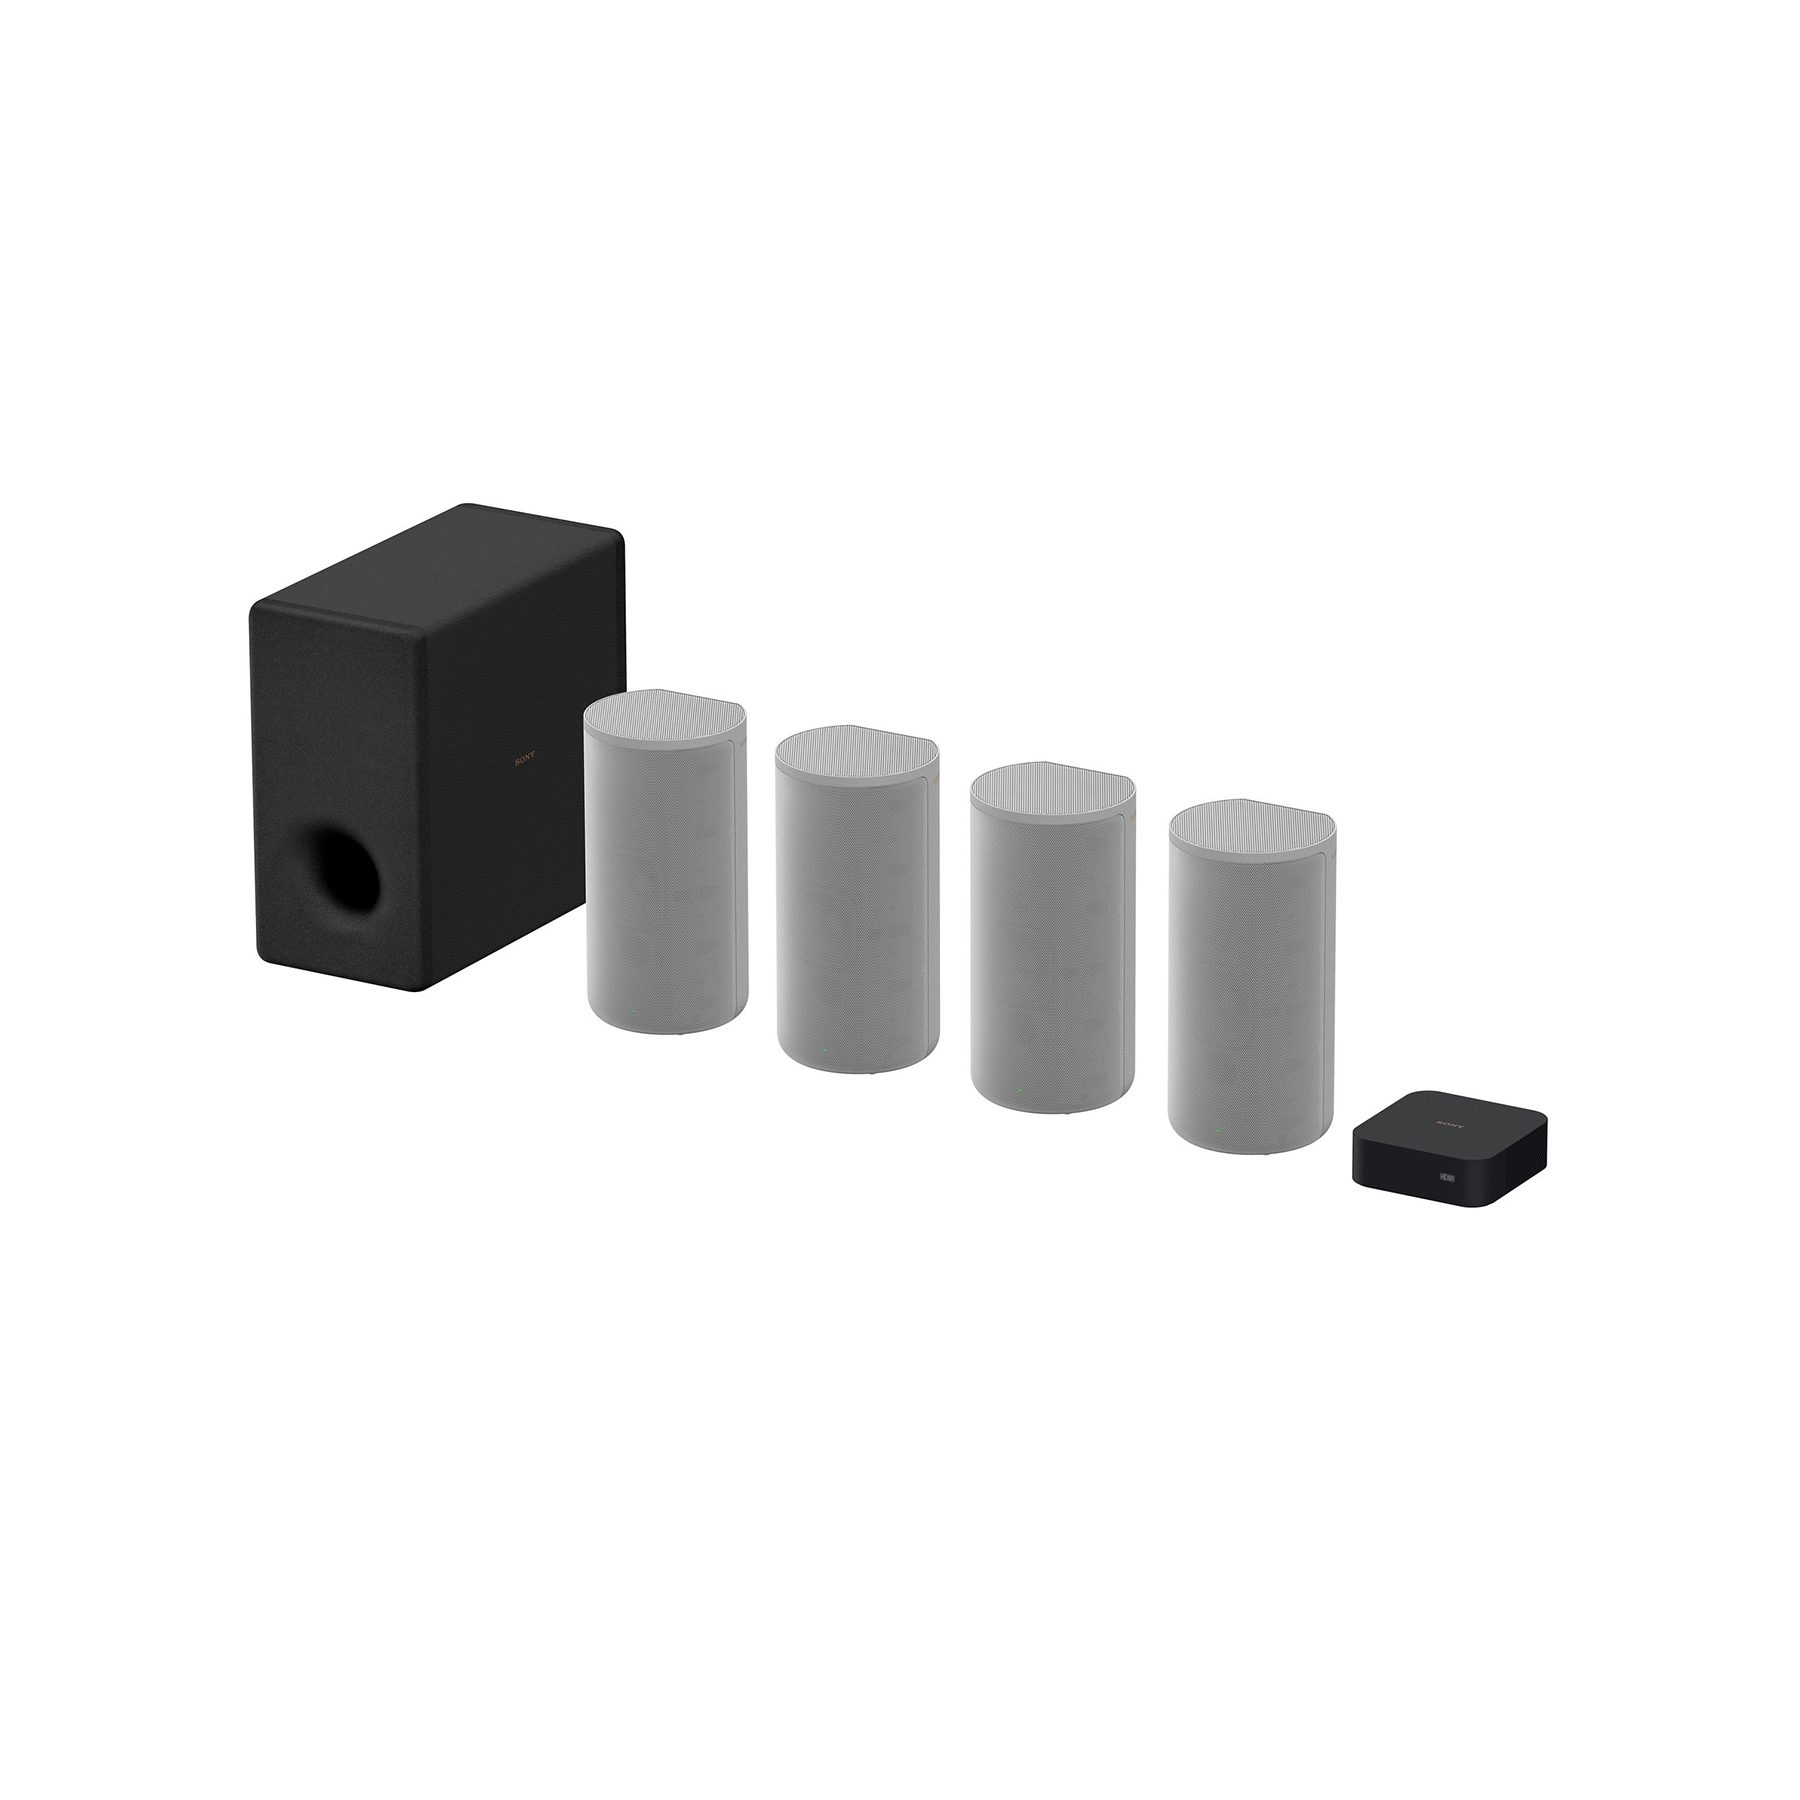 Sony HT-A9 Home Theatre System